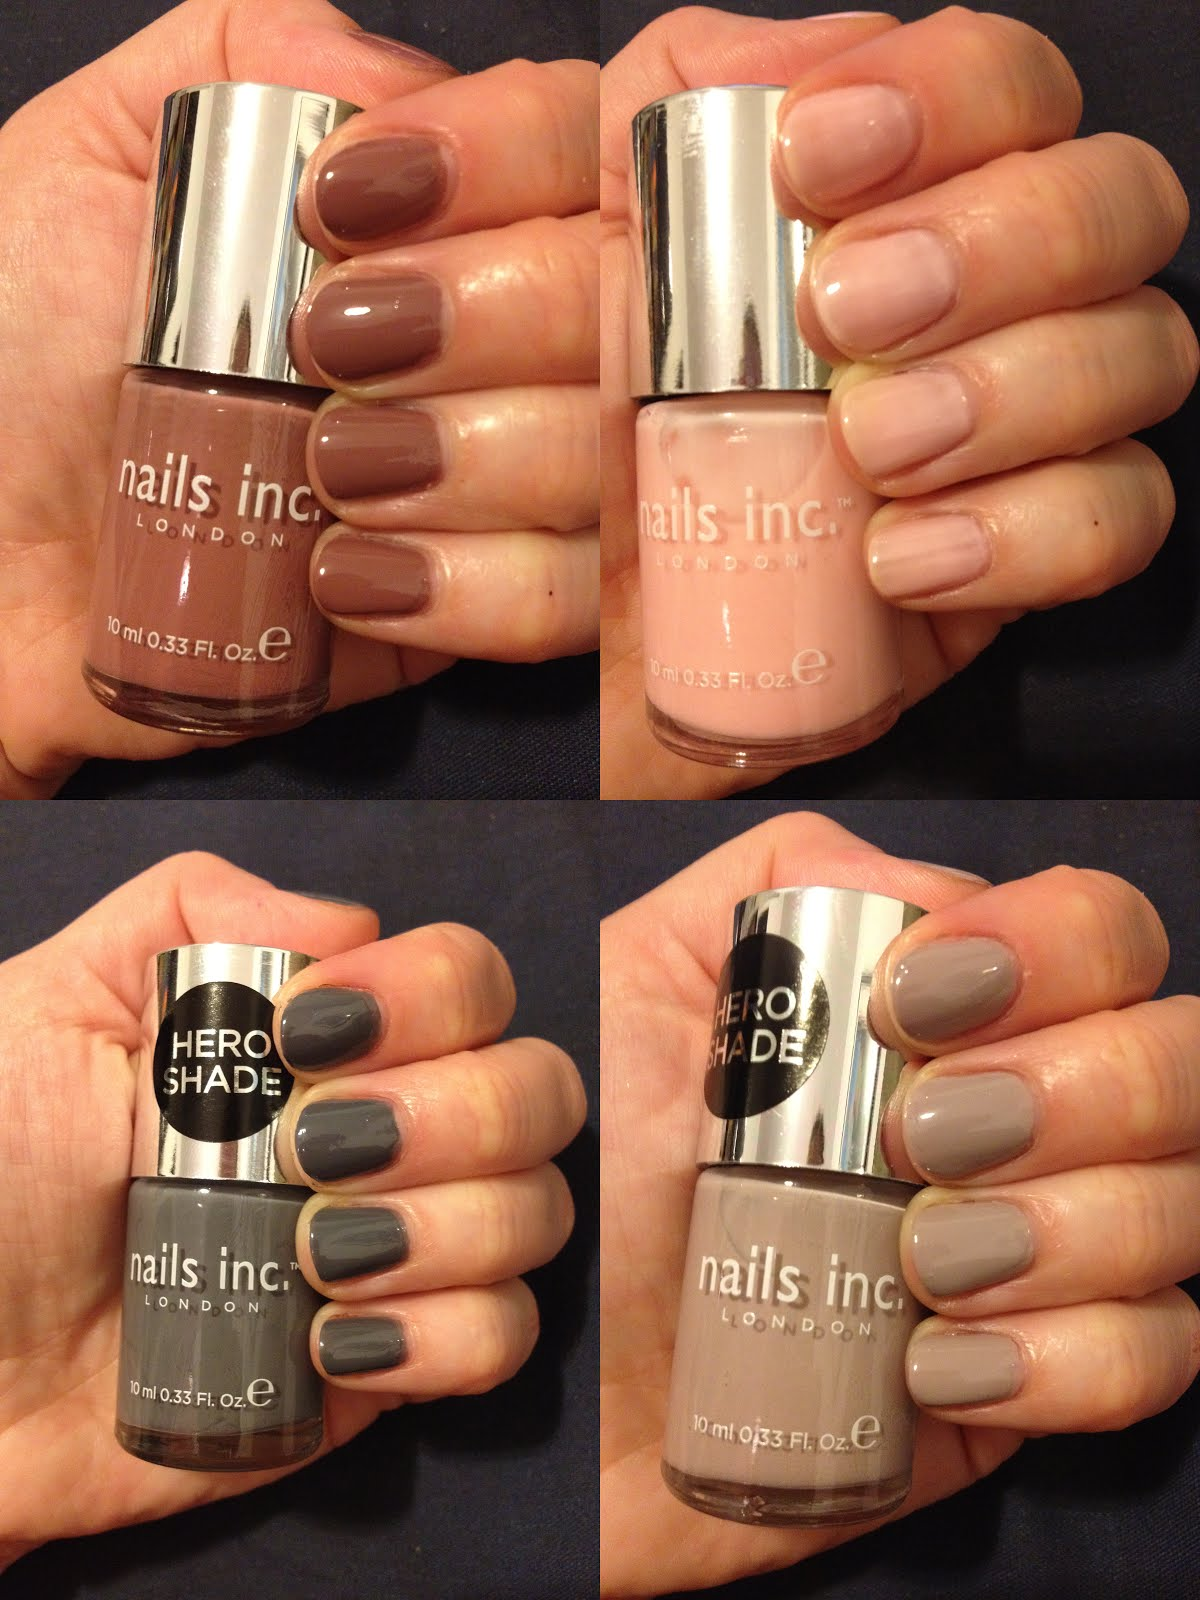 The Beauty of Life: Nails Inc. Colour Collection Swatches